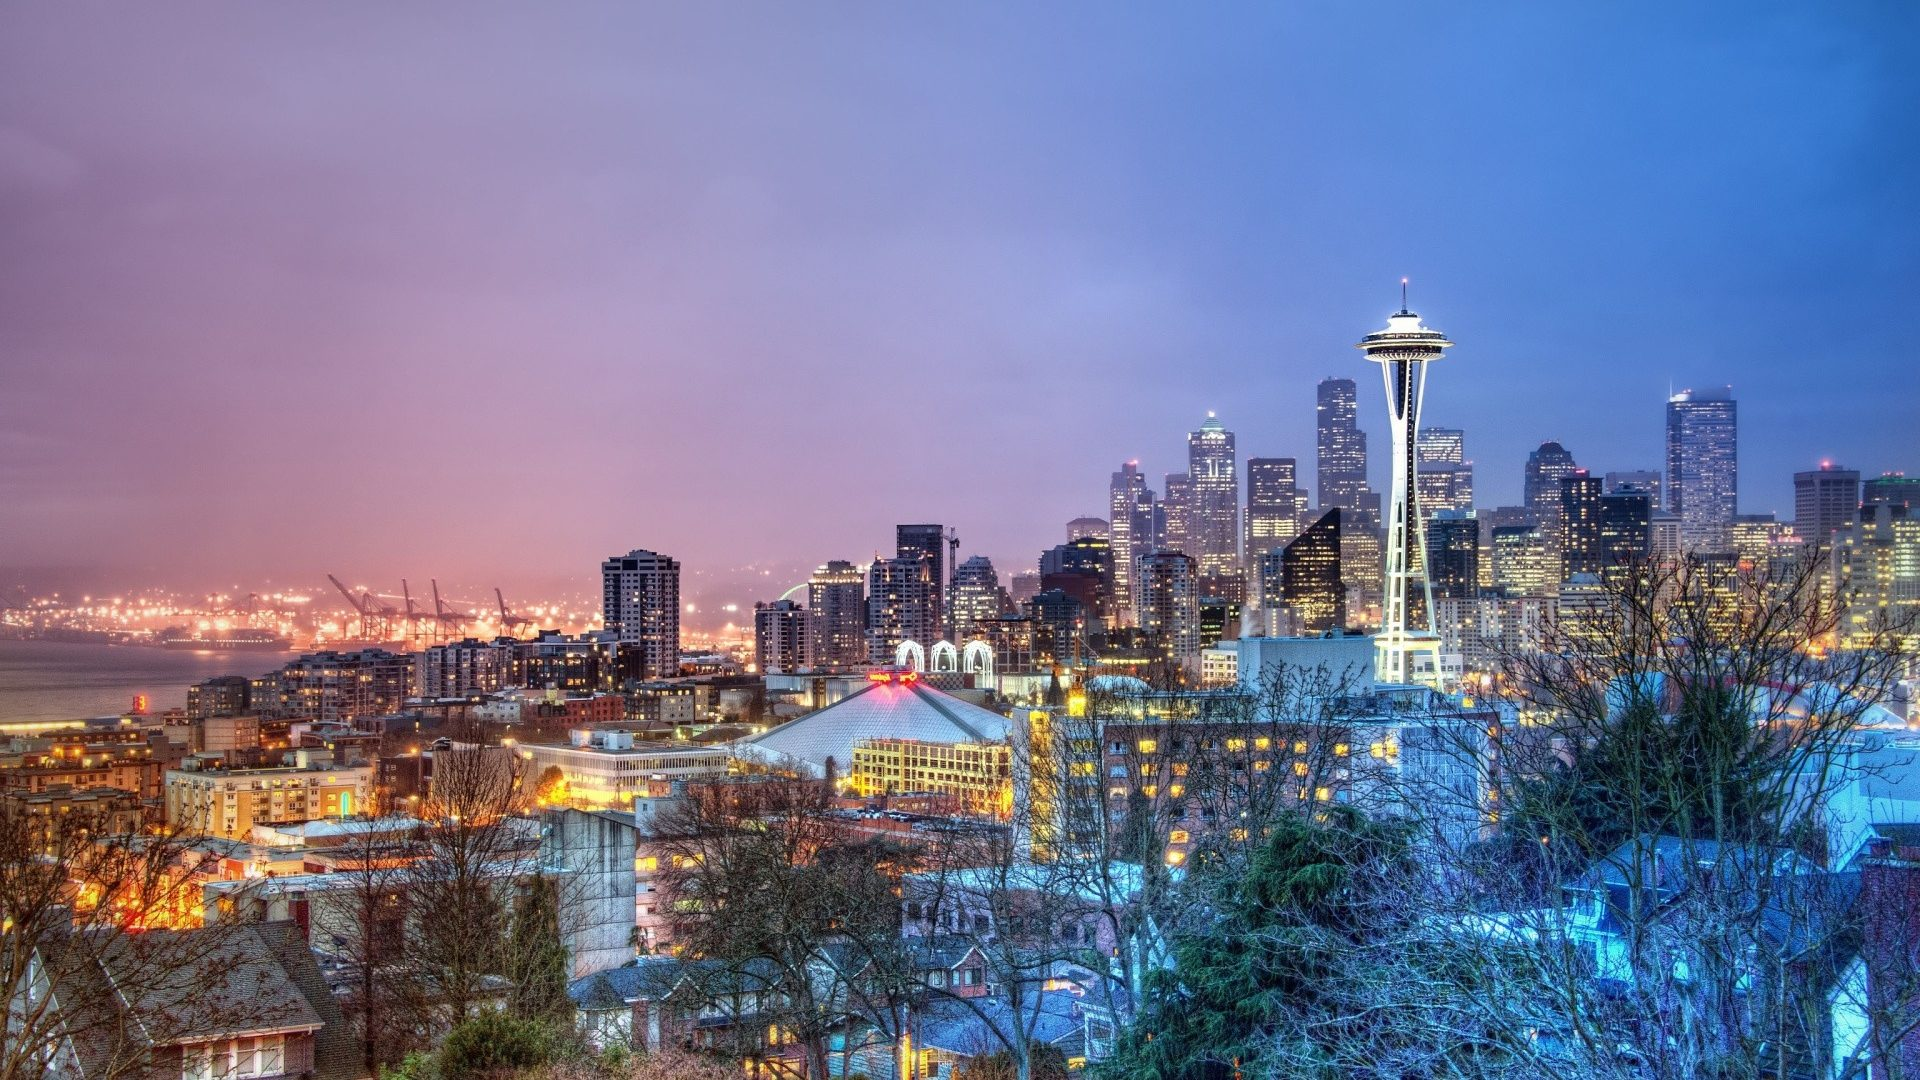 Wallpapers Seattle Posted By Samantha Anderson